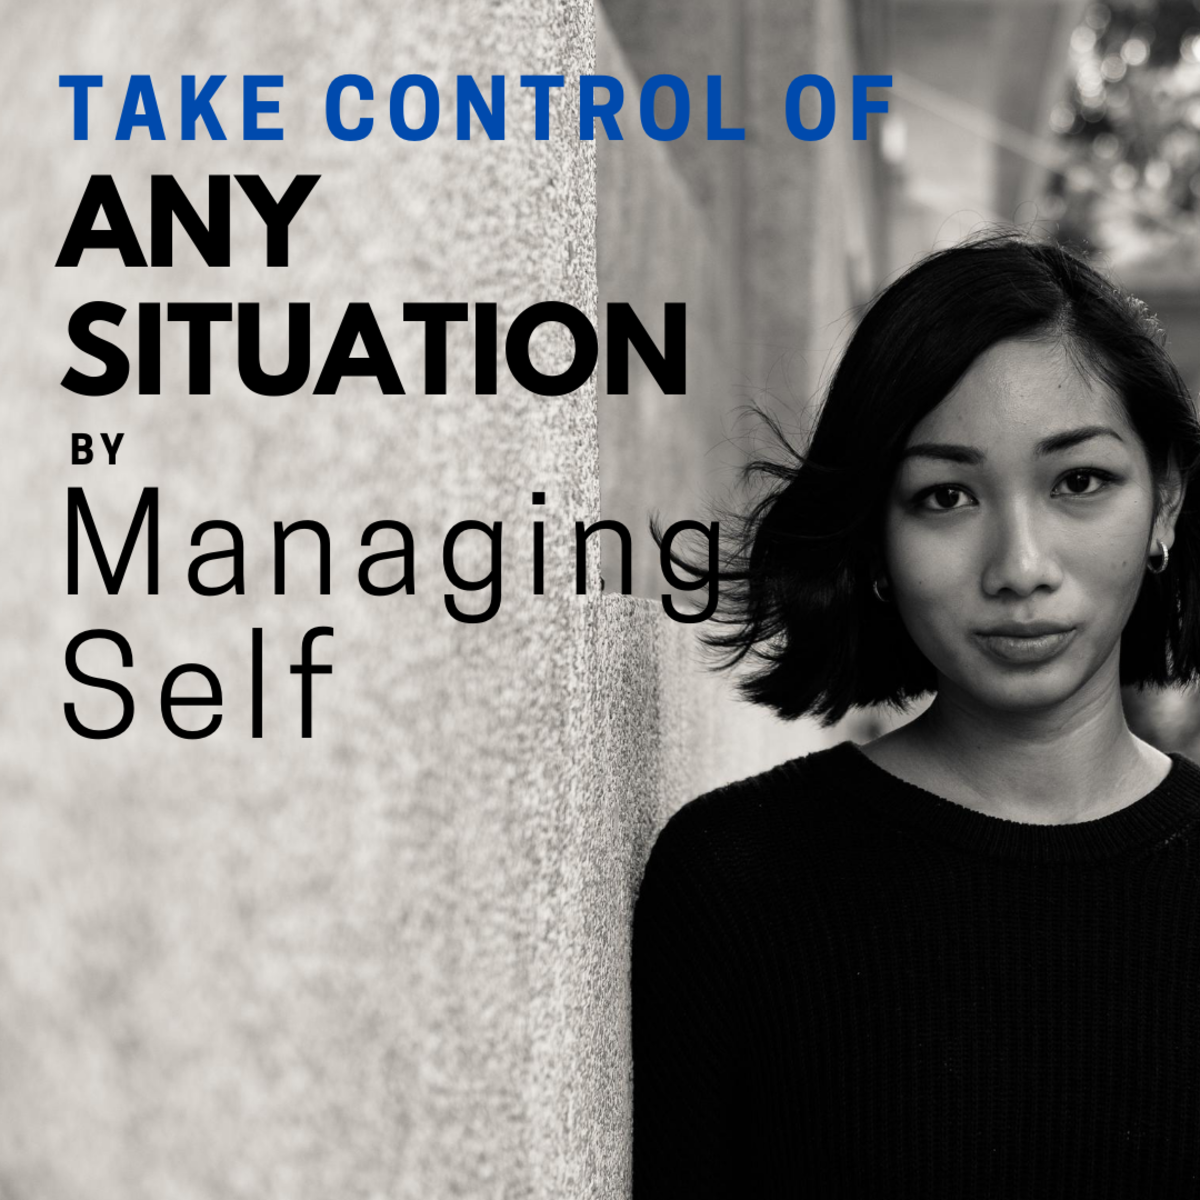 Taking Control of Any Situation by Controlling the Self